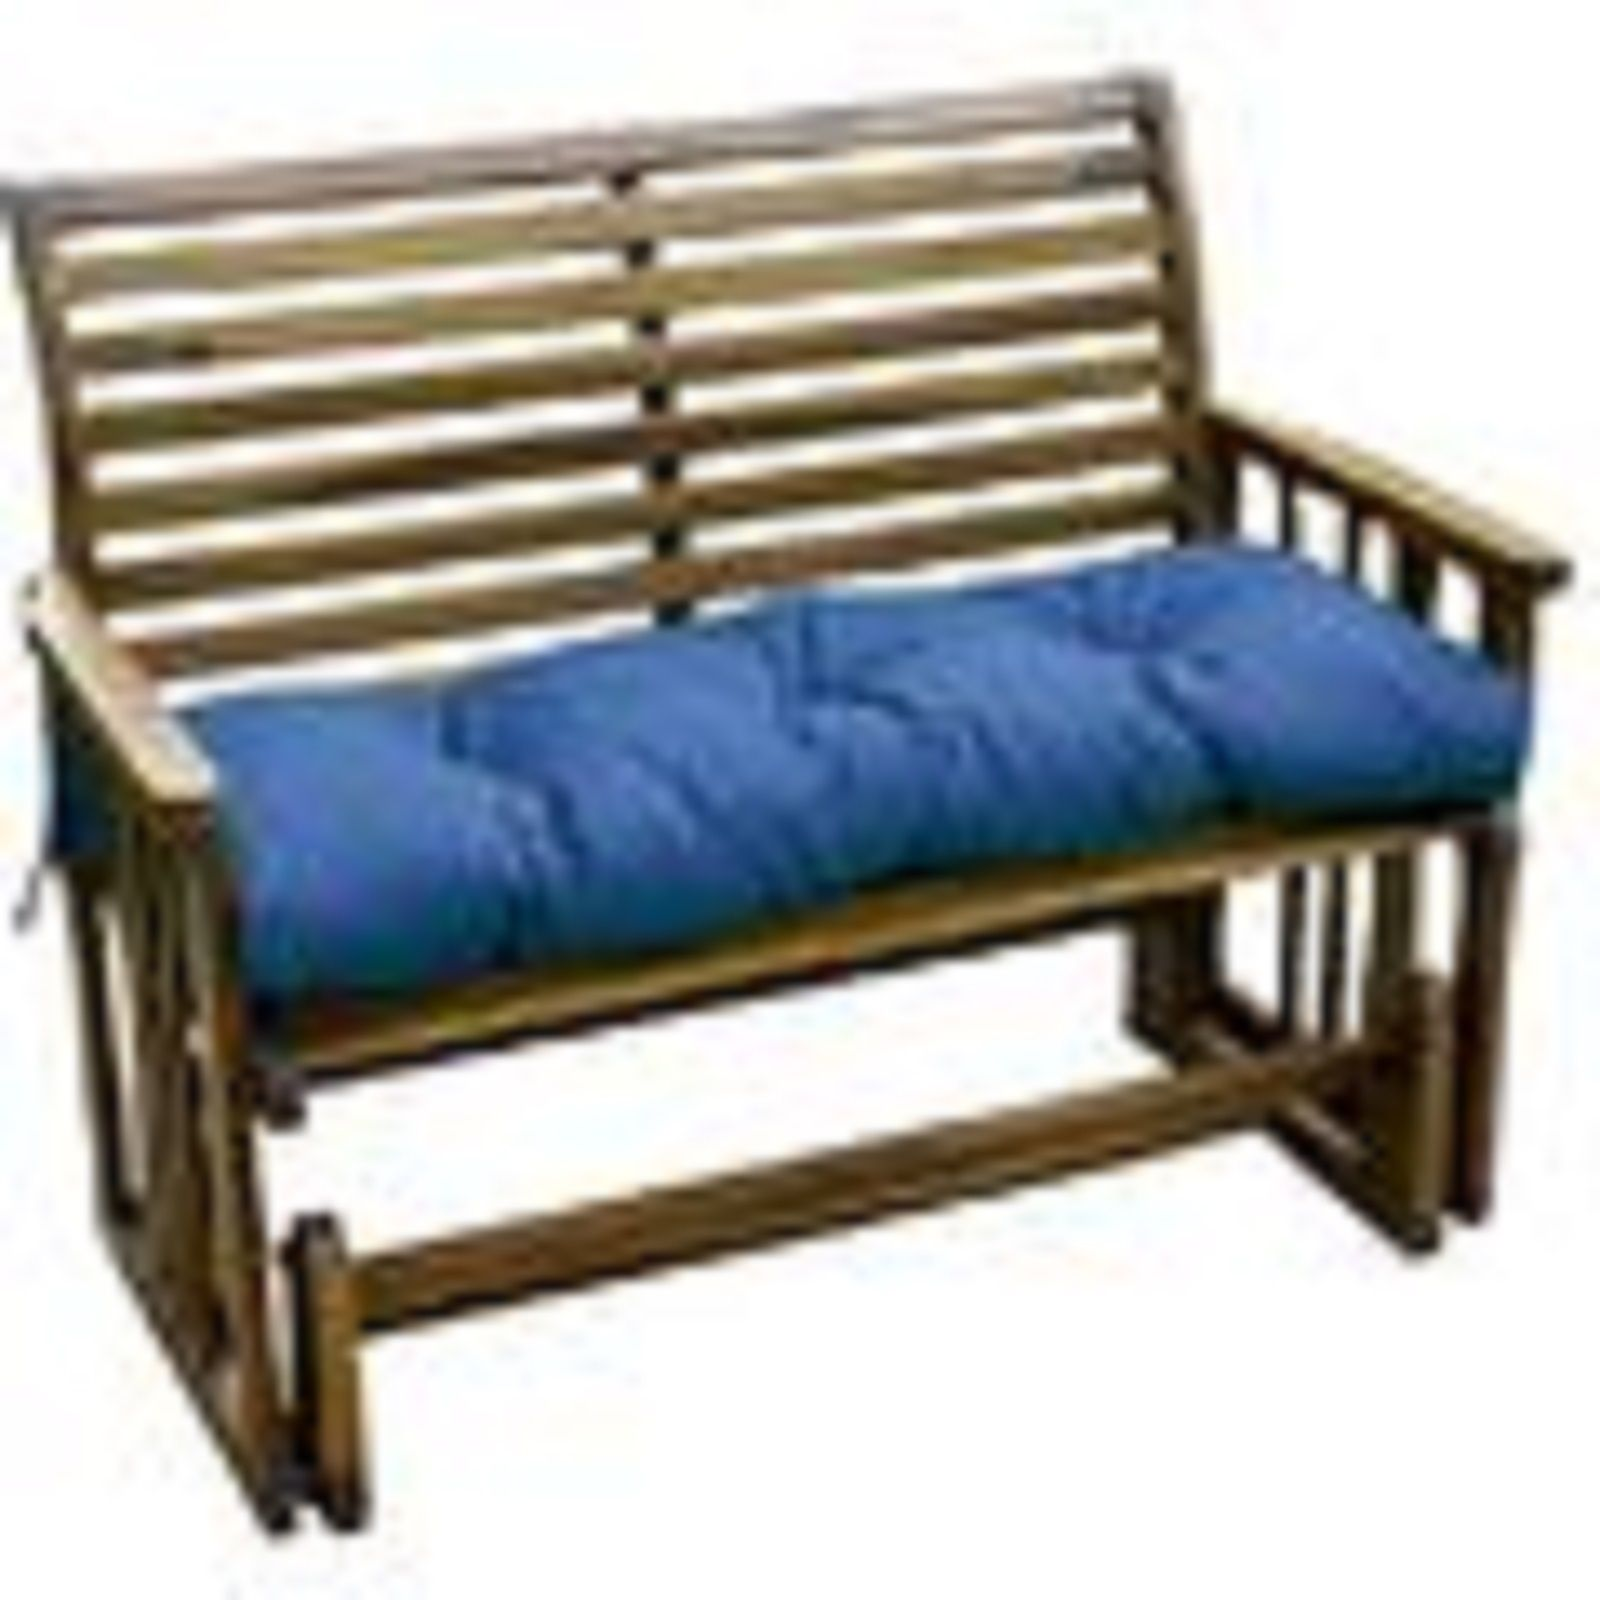 36 From Kmart Outdoor Swing Bench Cushion Measures 4 X 17